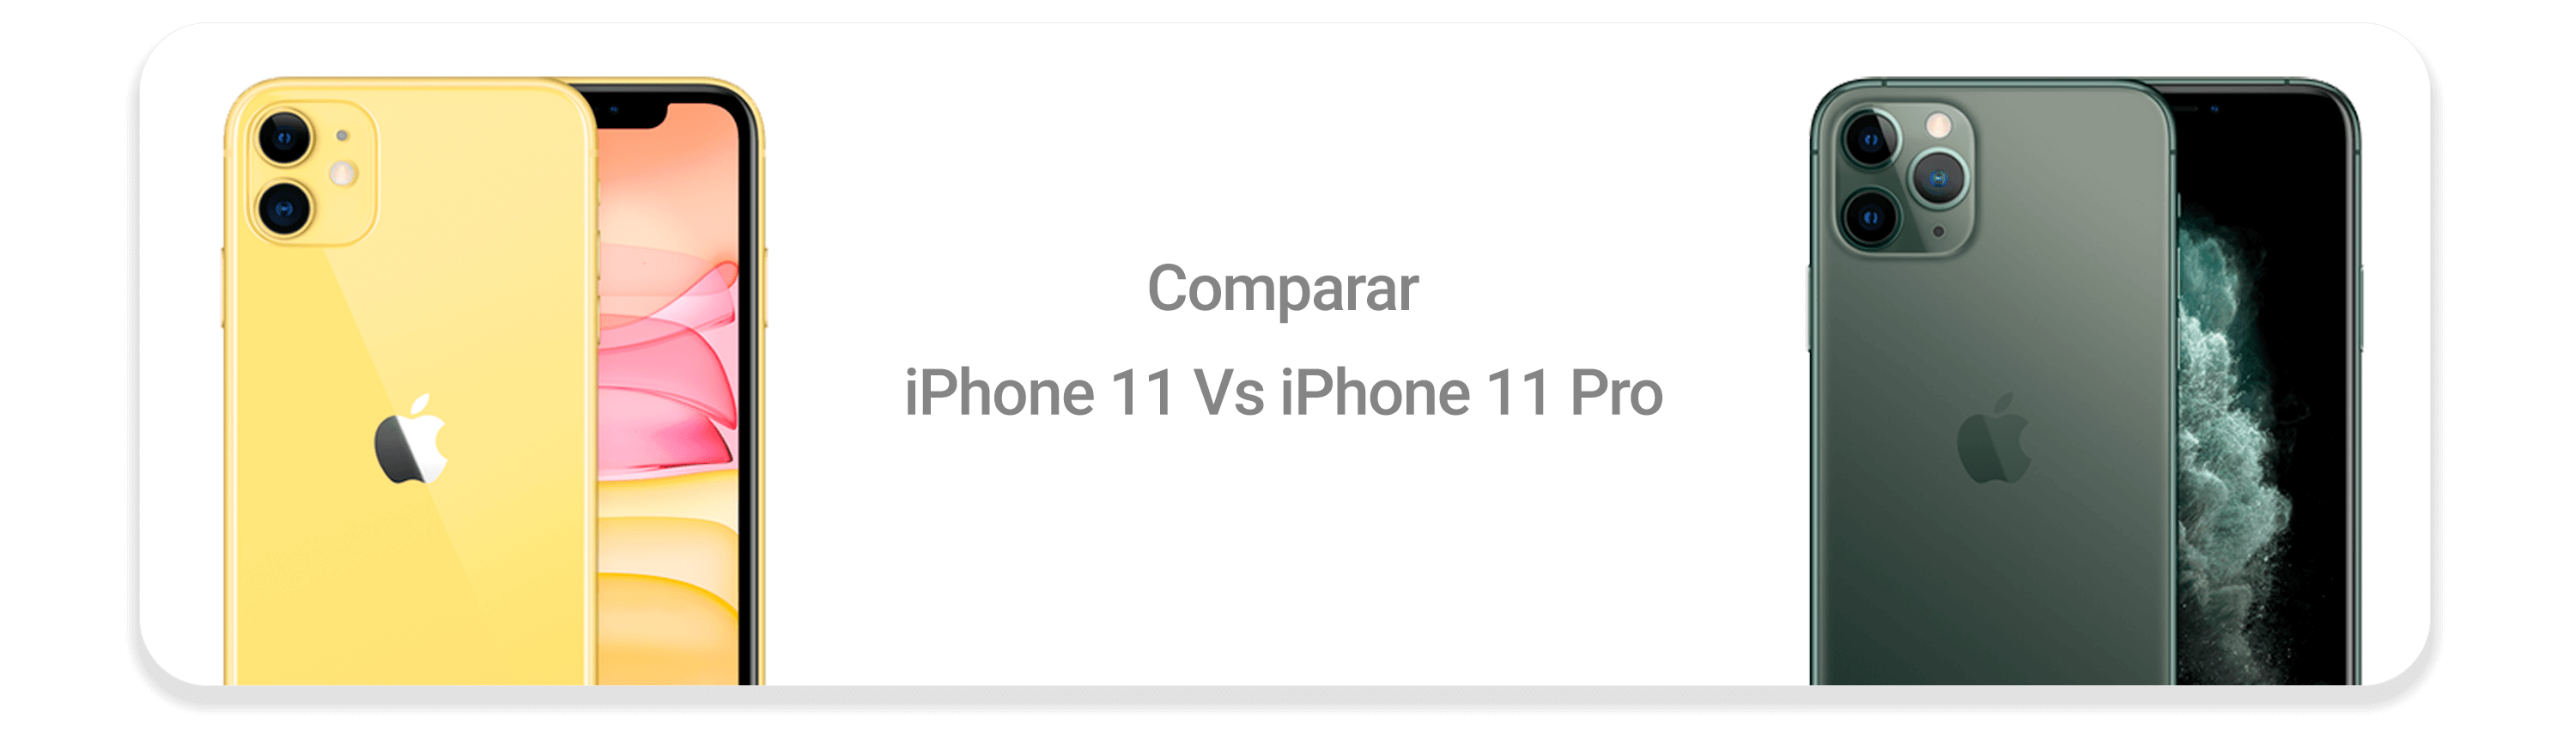 iphone-11-vs-iphone-11-pro.png